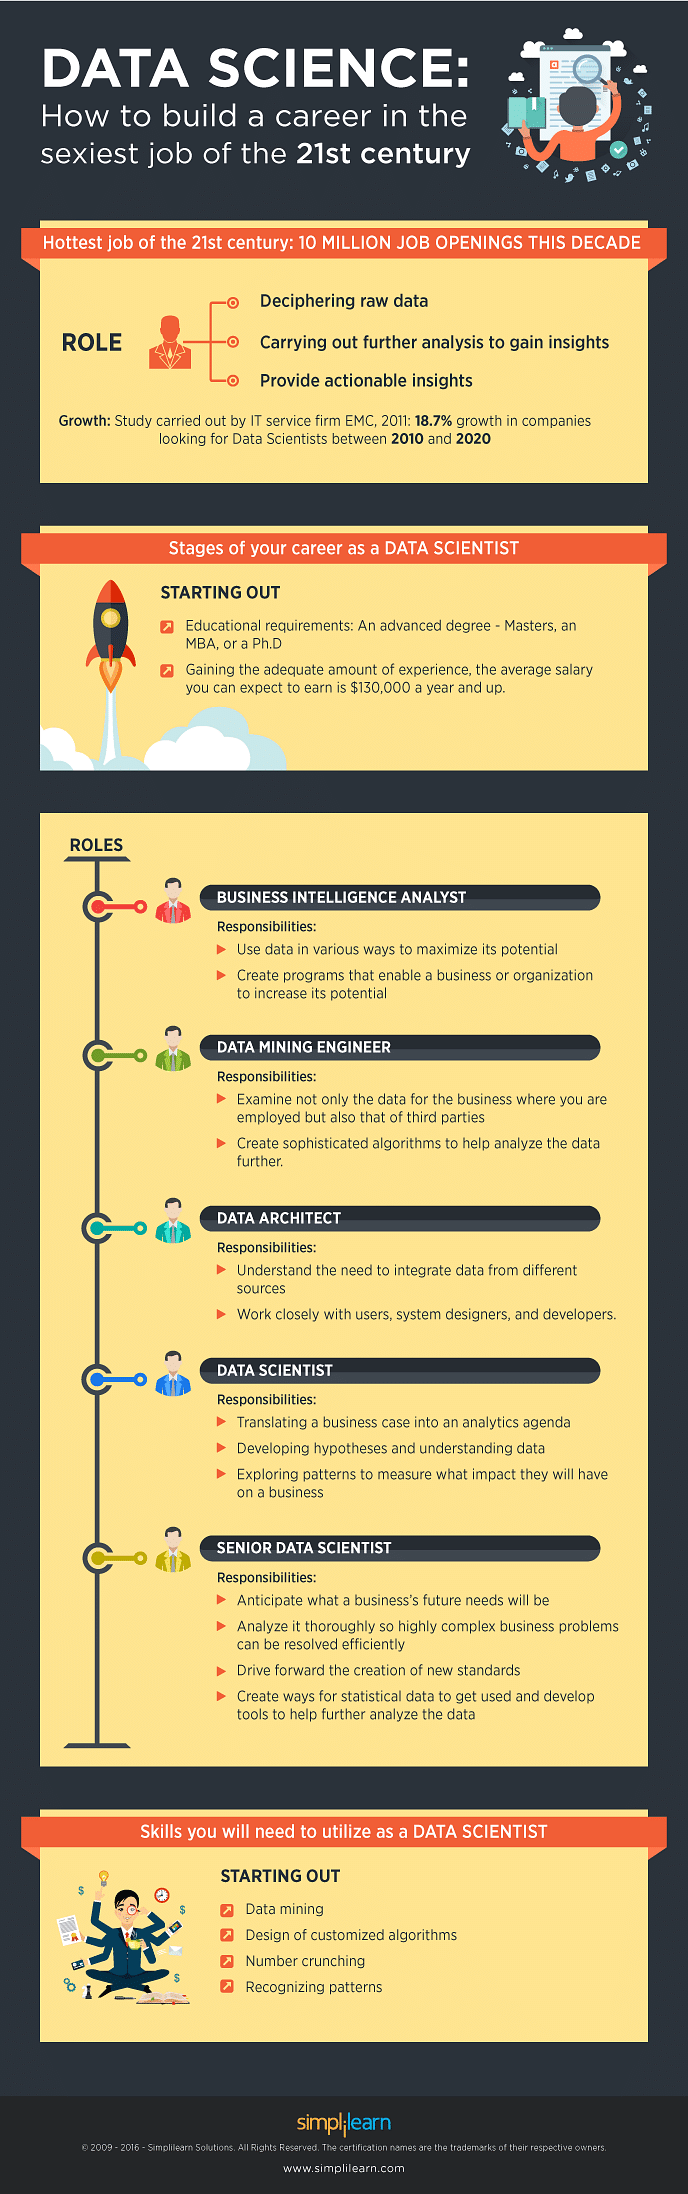 ultimate guide to build a career in data science simplilearn data science how to build a career in the sexiest job of the 21st century